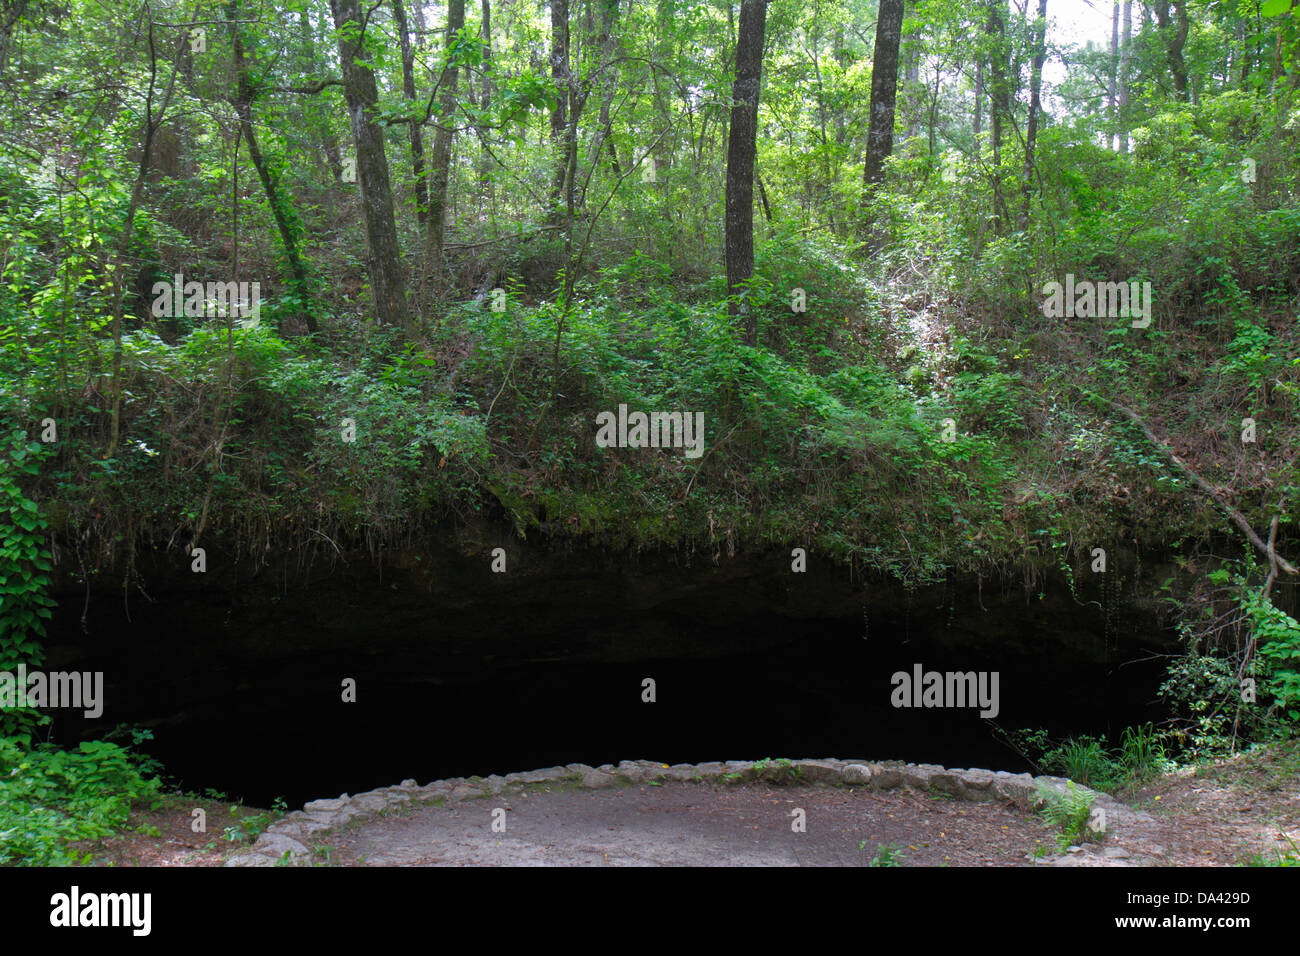 Tallahassee Florida Apalachicola National Forest Leon Sinks sinkhole Big Dismal Sink Woodville Karst Plain - Stock Image